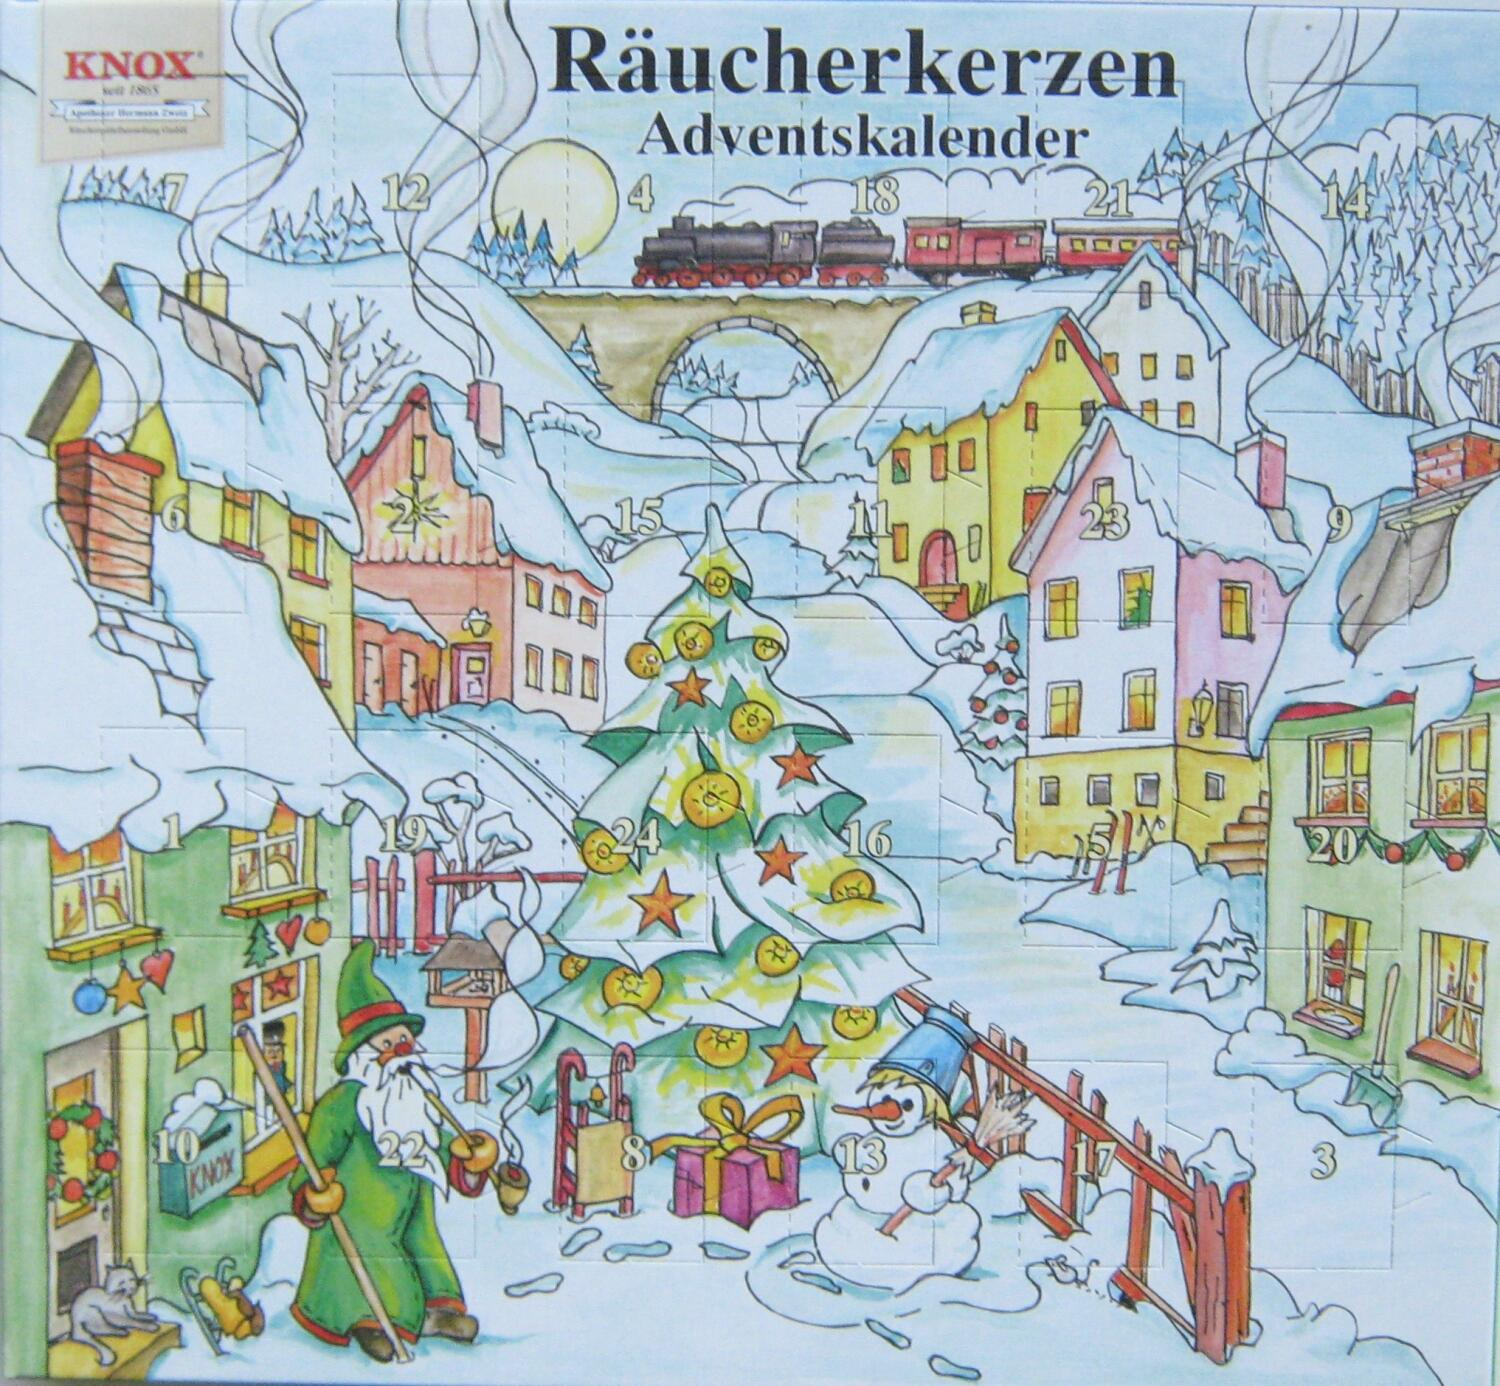 Knox Adventskalender Räucherkerzen